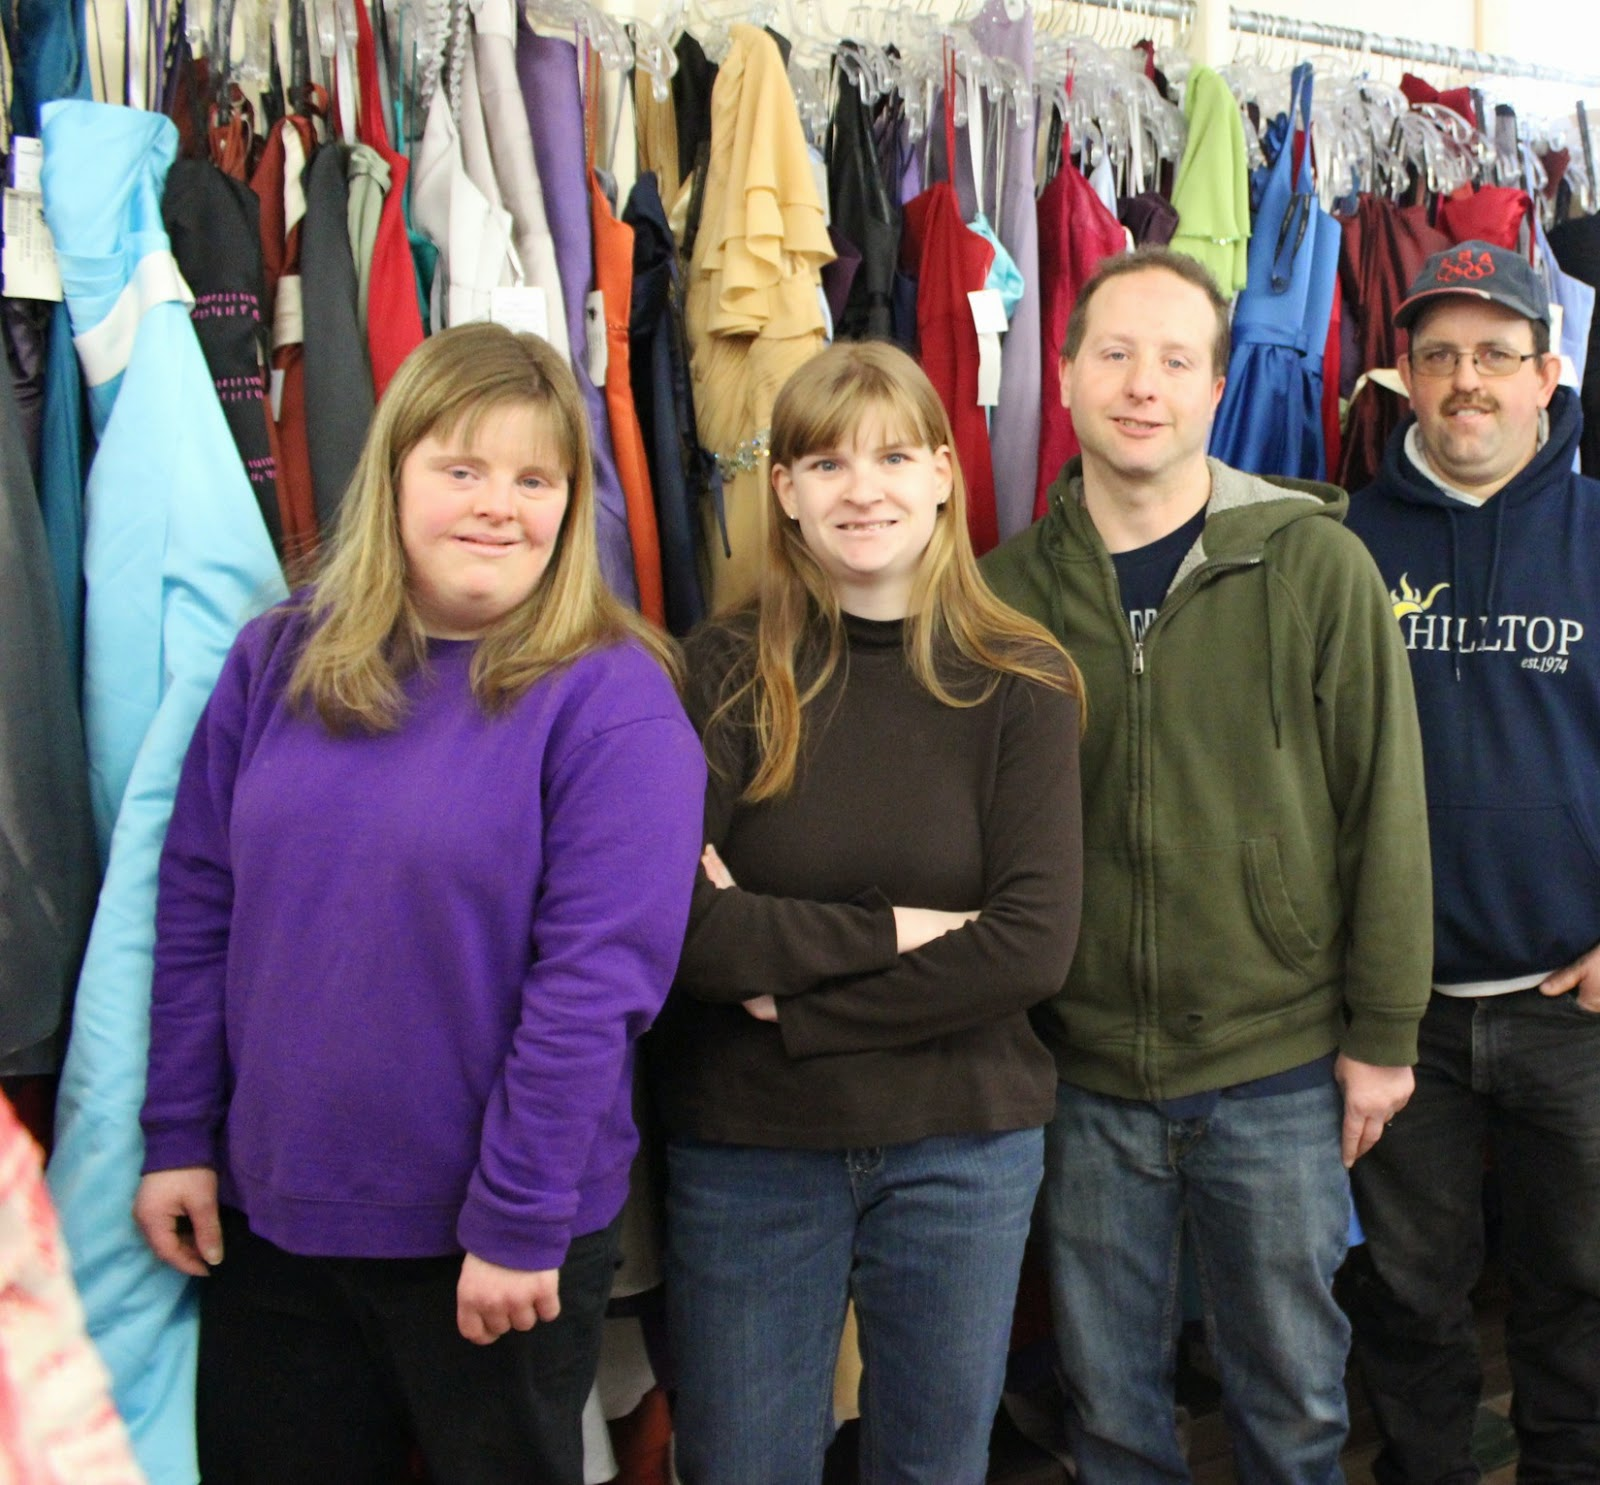 Finders Keepers workers Justine Deluca, Morgan Snyder, Keith Conklin, and Barney Pedraza